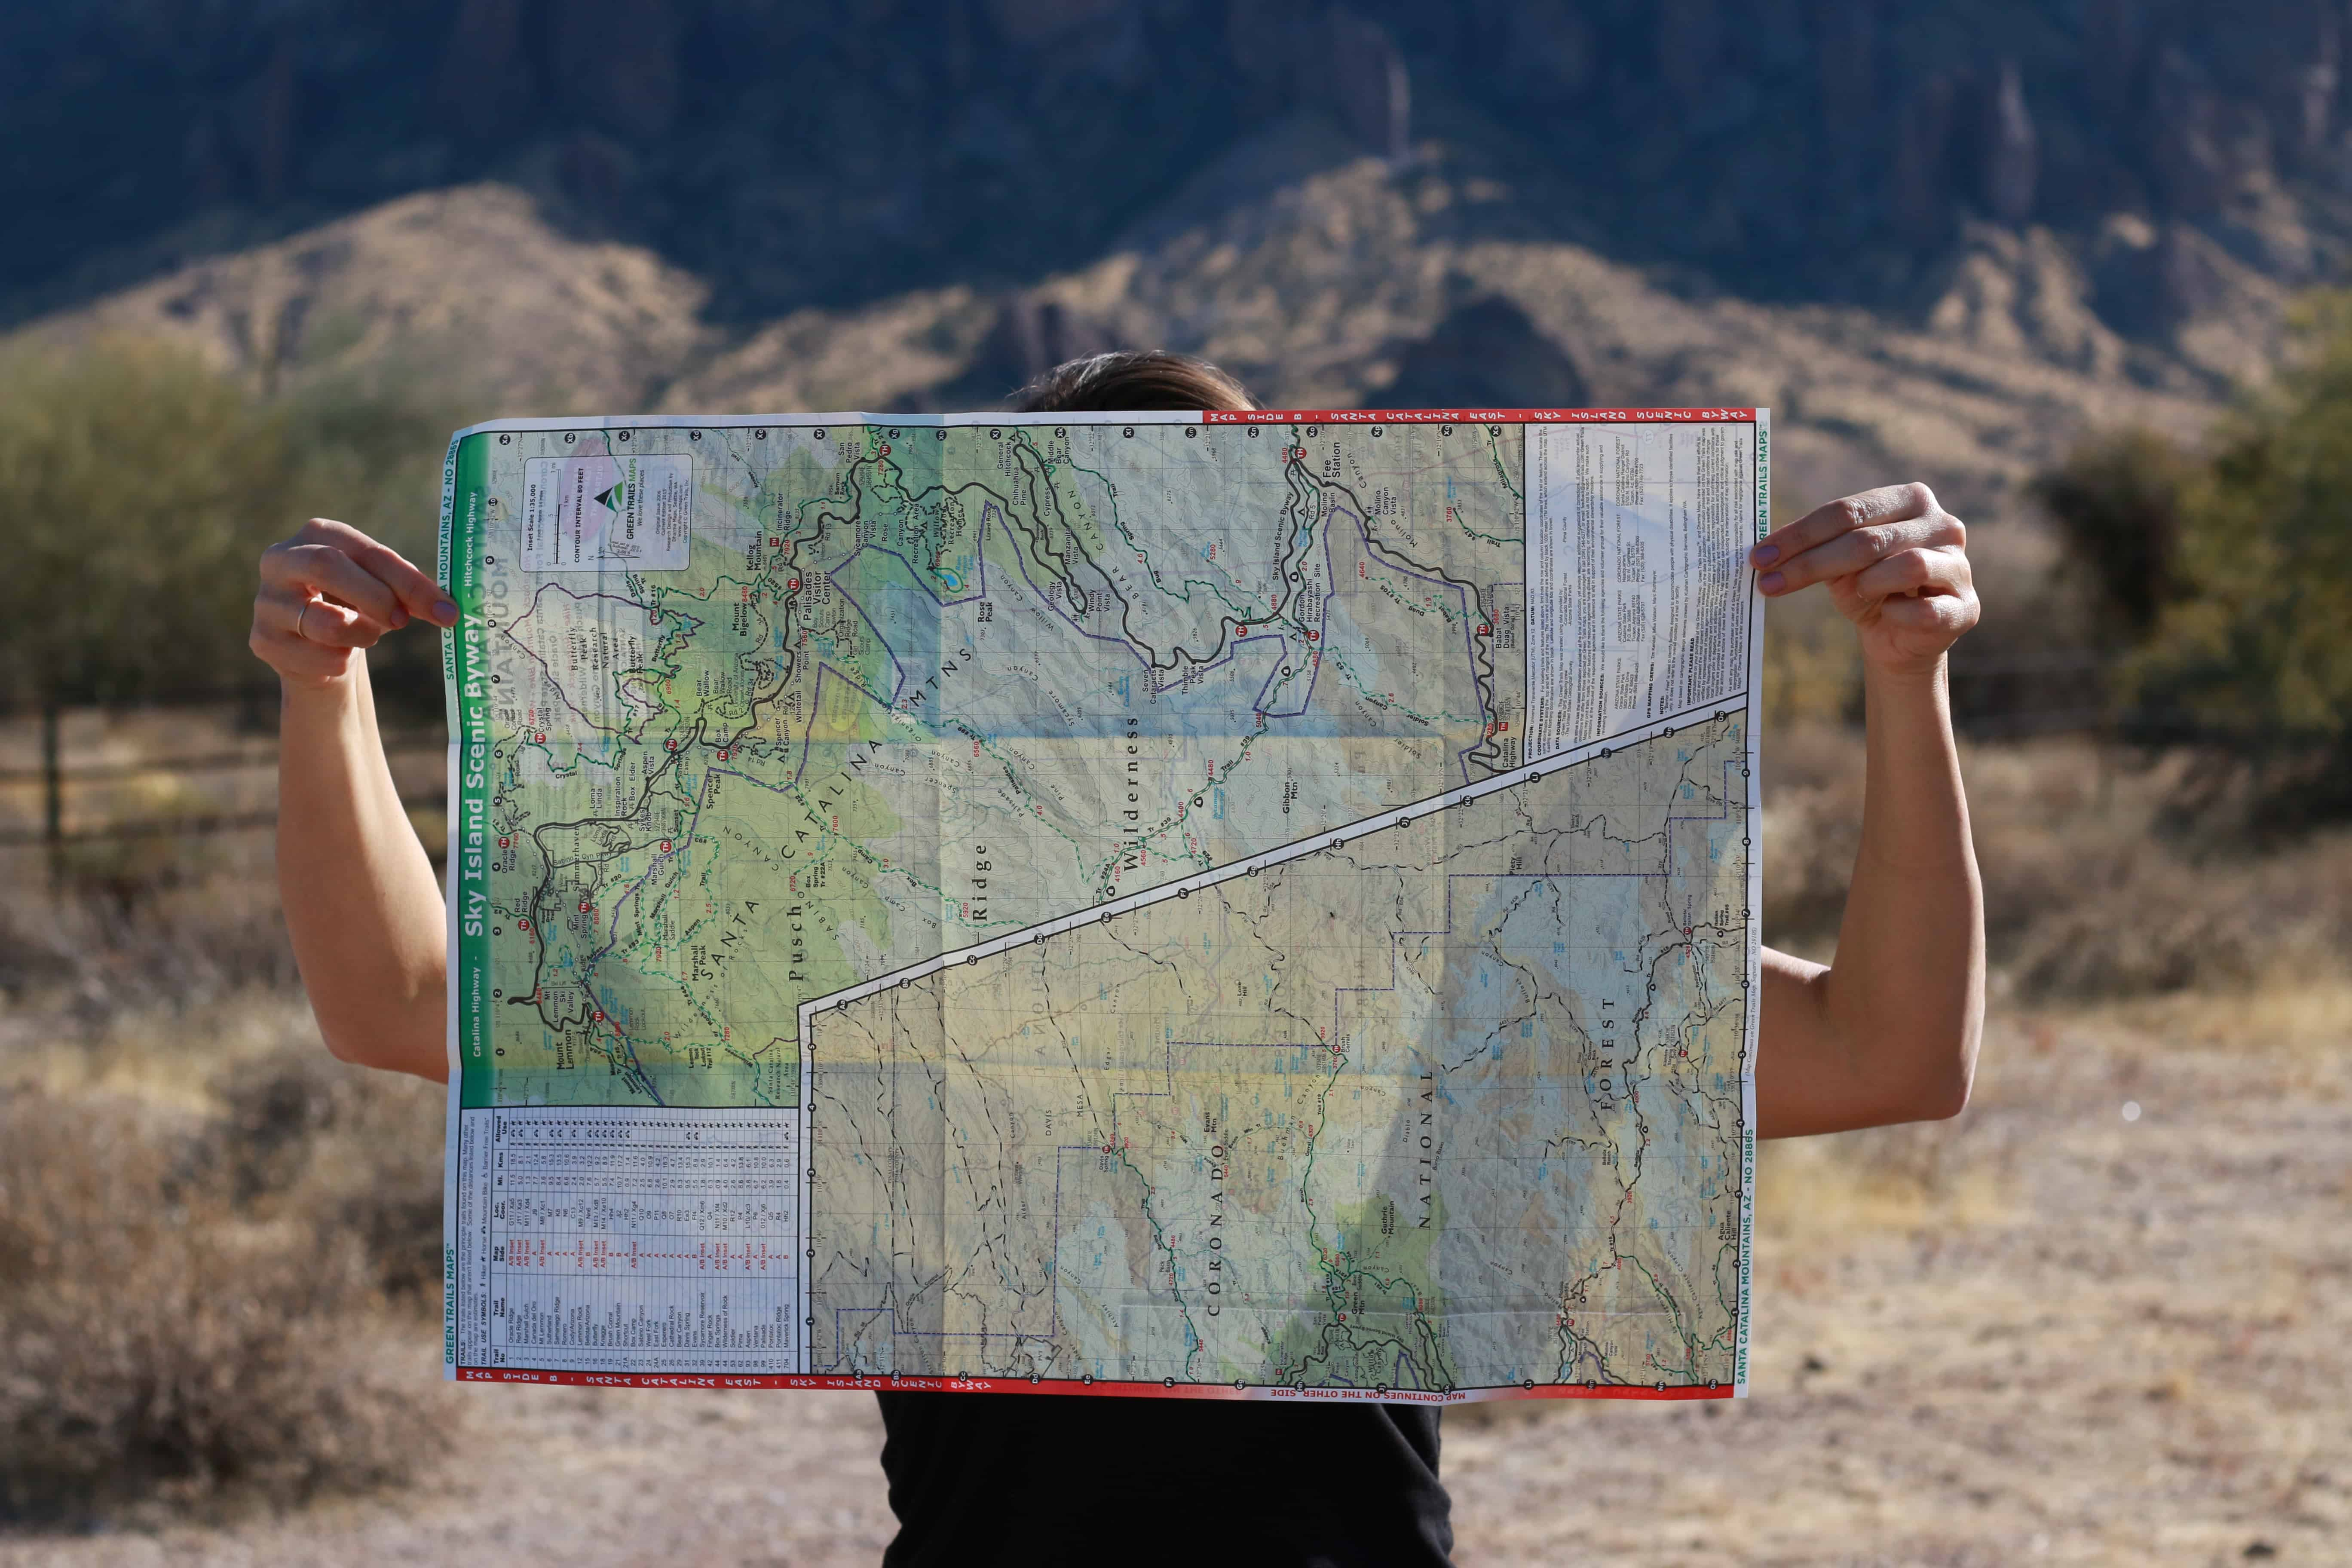 Lady holding a map